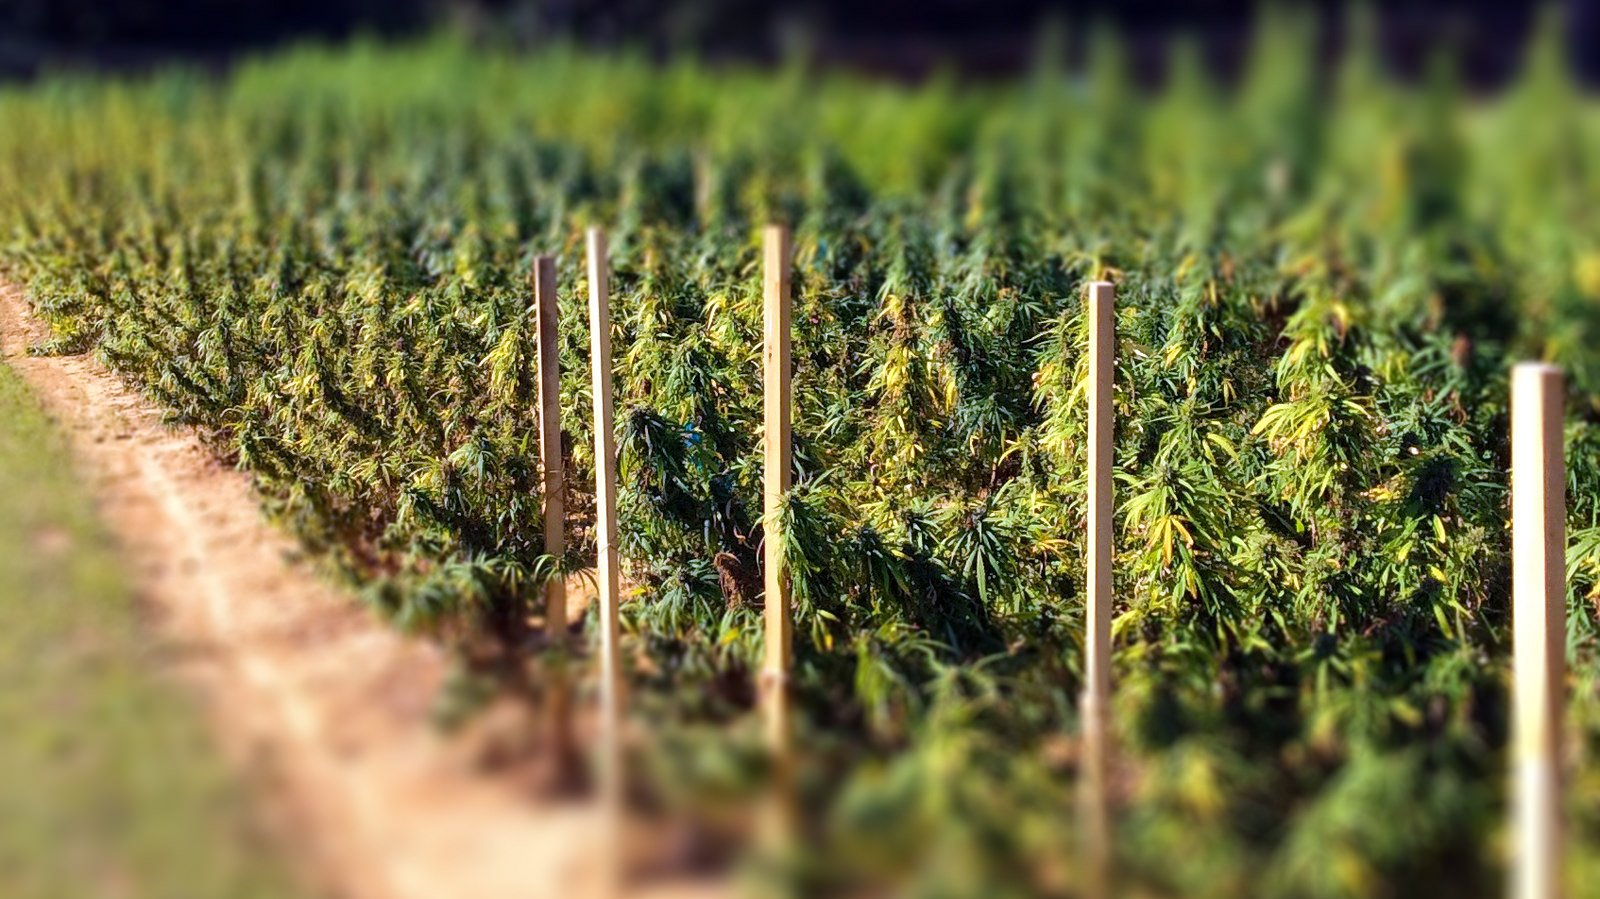 A field of industrial cannabis plants